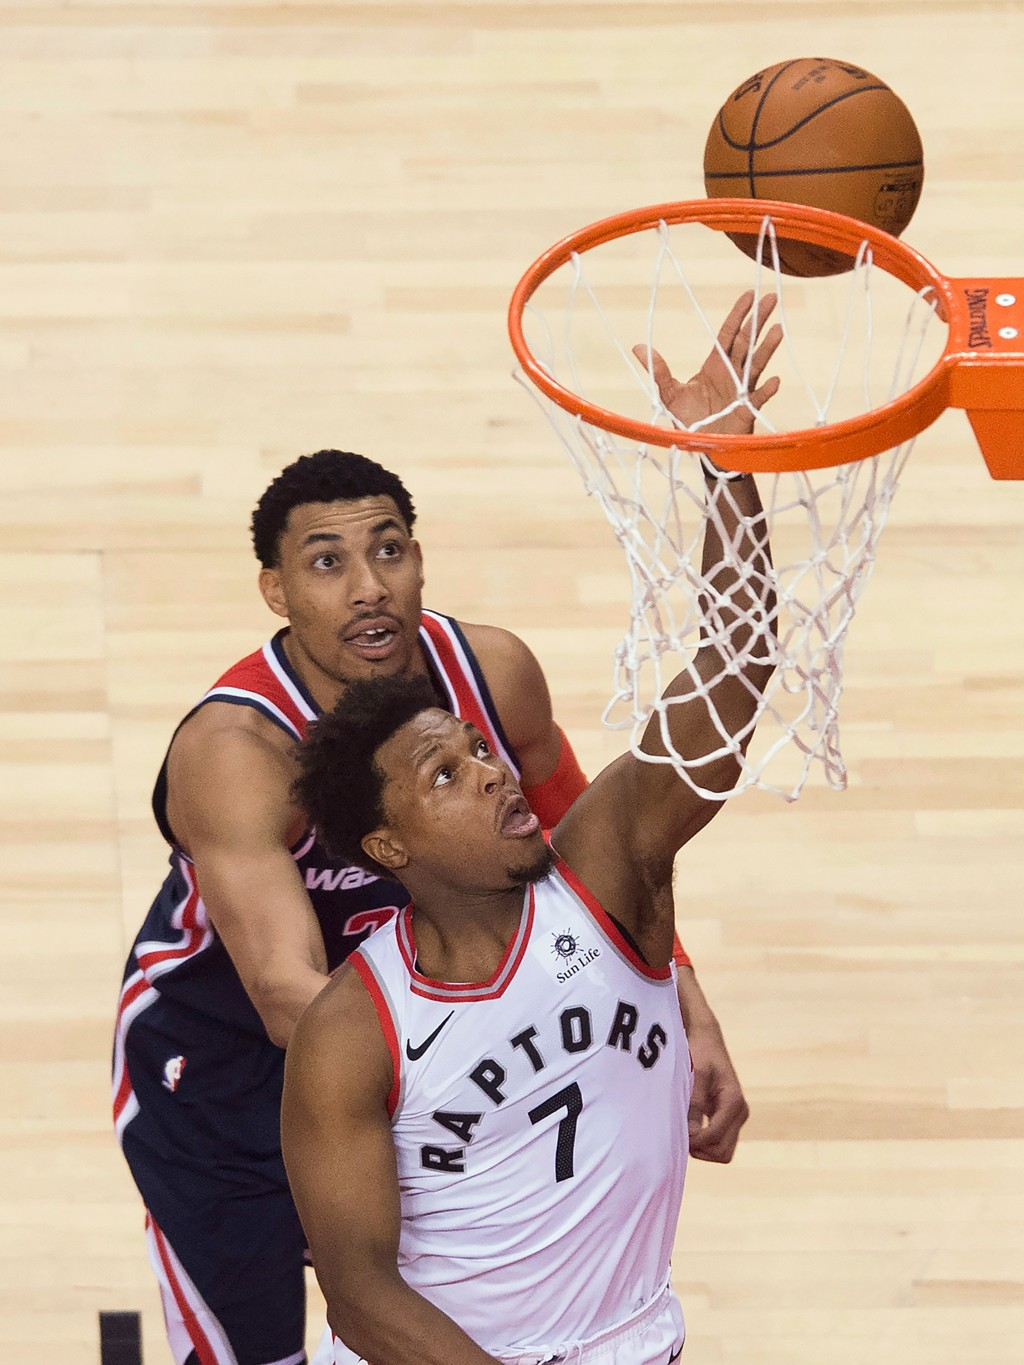 Toronto Raptors guard Kyle Lowry (7) scores past Washington Wizards forward Otto Porter Jr. (22) during the second half of Game 1 of an NBA basketball